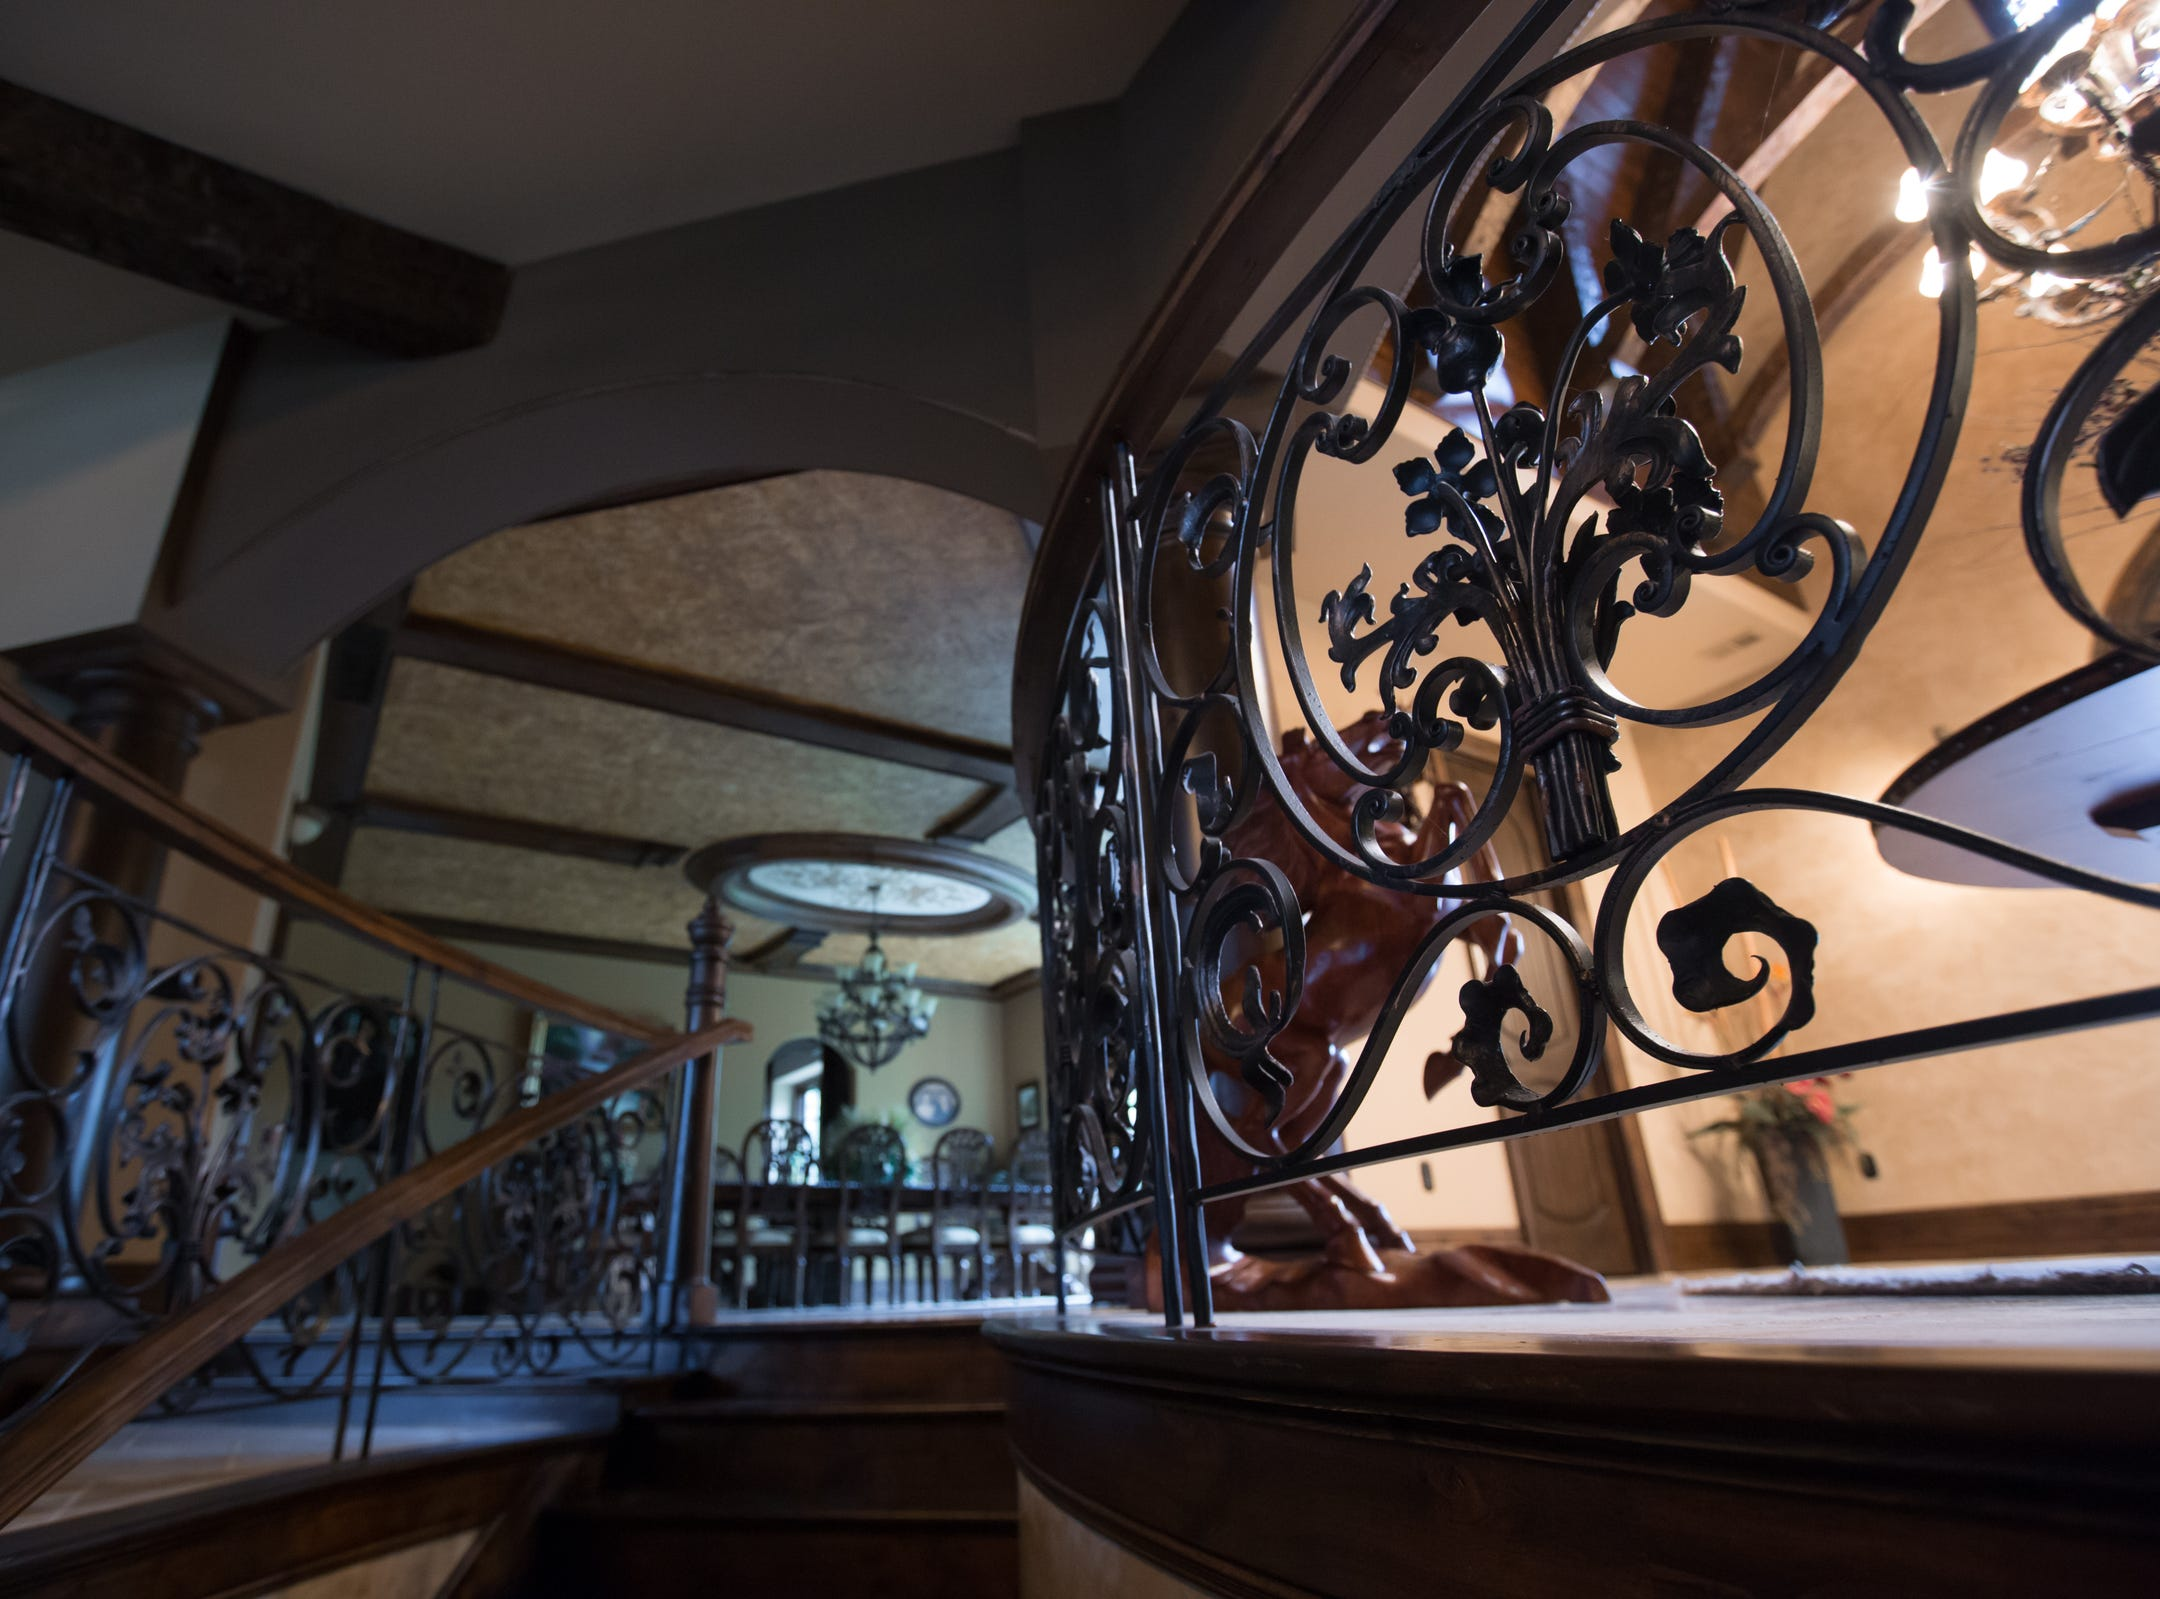 Hand forged wrought iron and alder wood staircase leading view from the basement to the dining room.